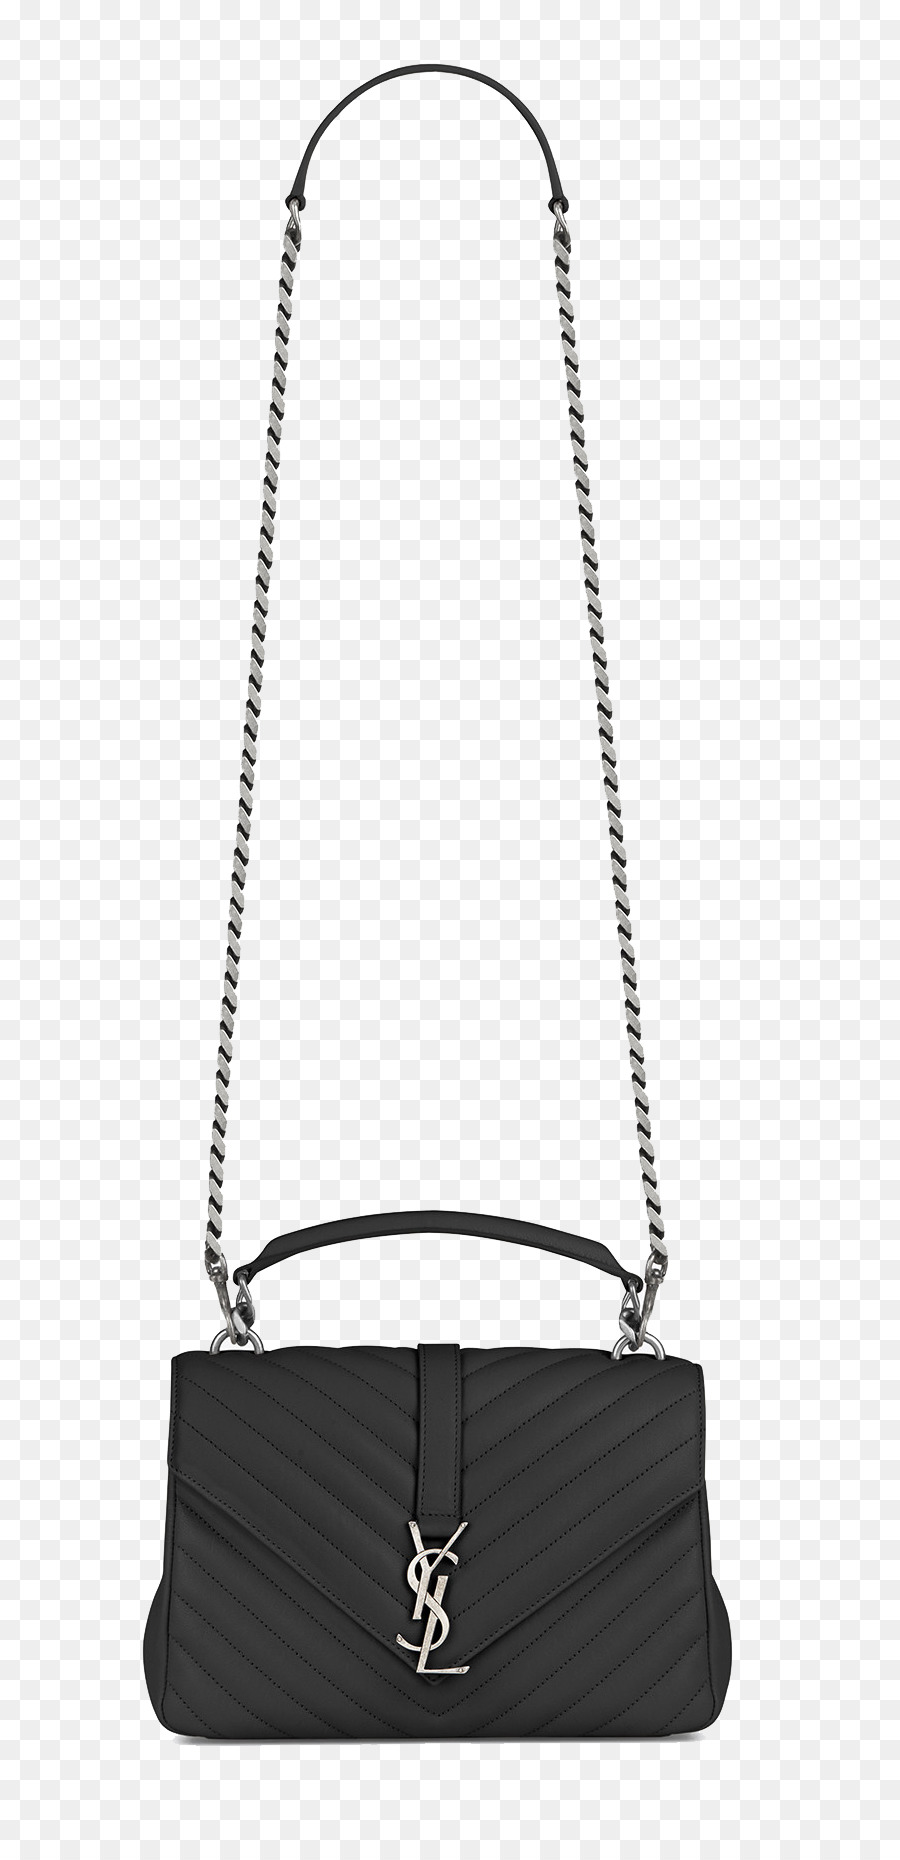 95d01d098d39 Yves Saint Laurent Handbag Leather Hermxe8s - SaintLaurent chain bag png  download - 879 1842 - Free Transparent Yves Saint Laurent png Download.